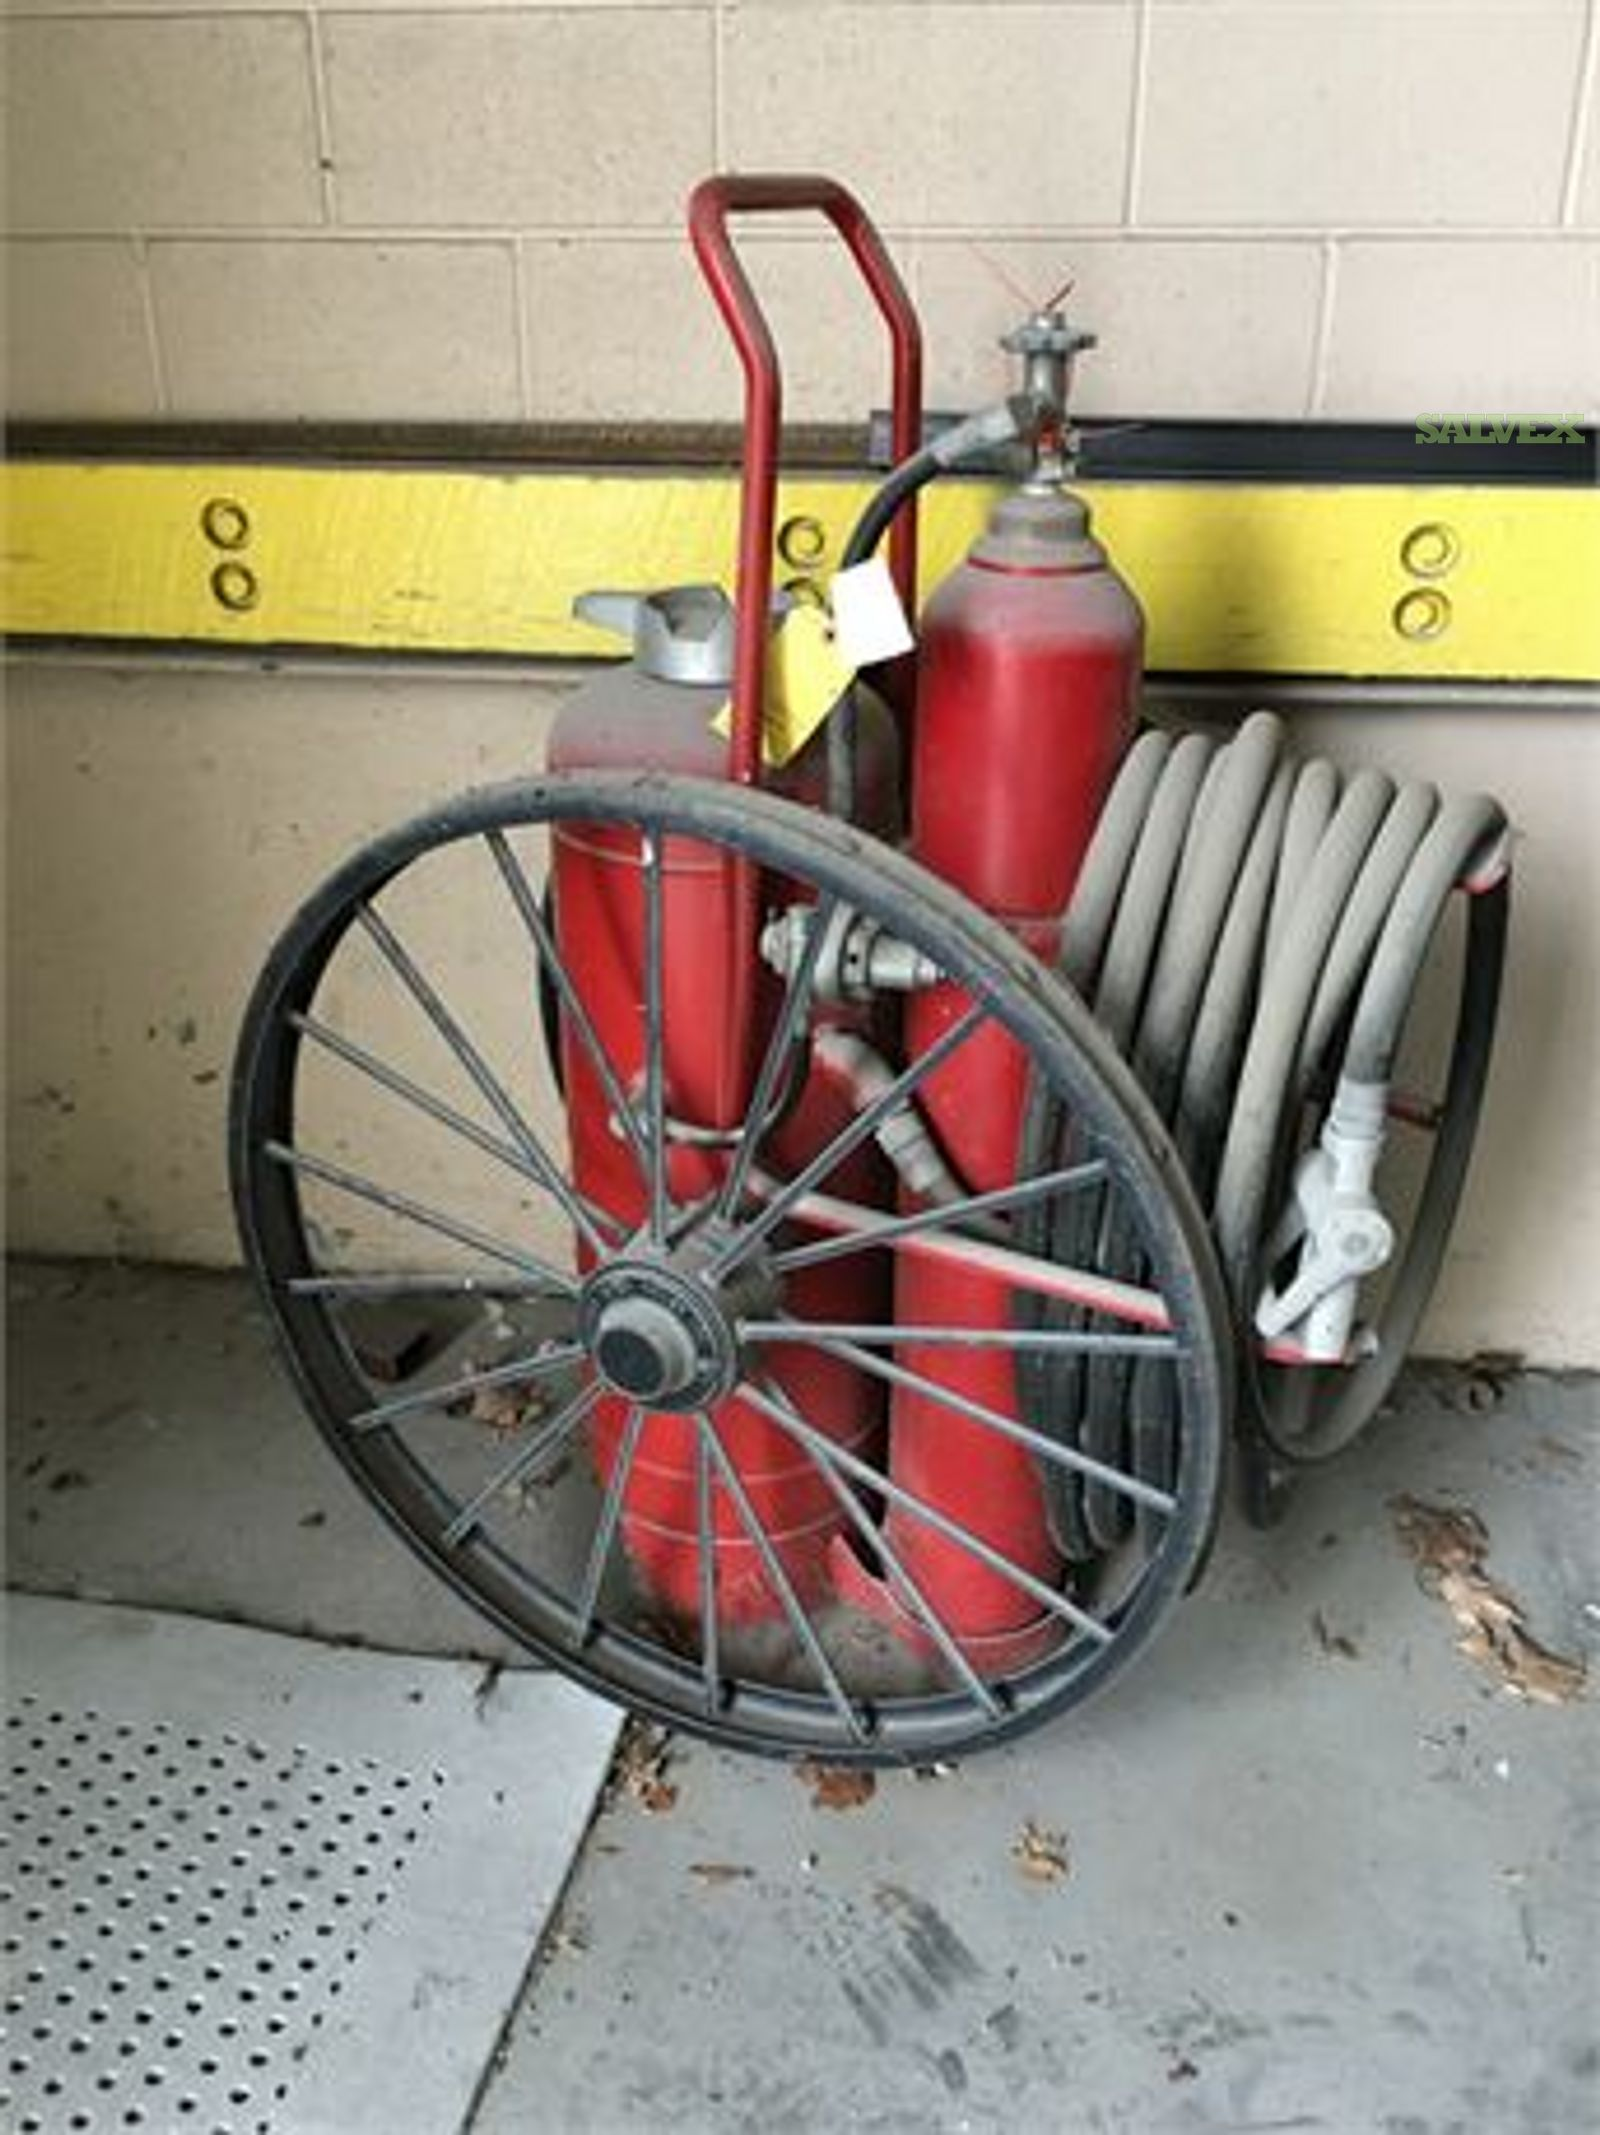 ANSUL 150-b Dry Chemical Fire Extinguisher- Used (1 Unit)